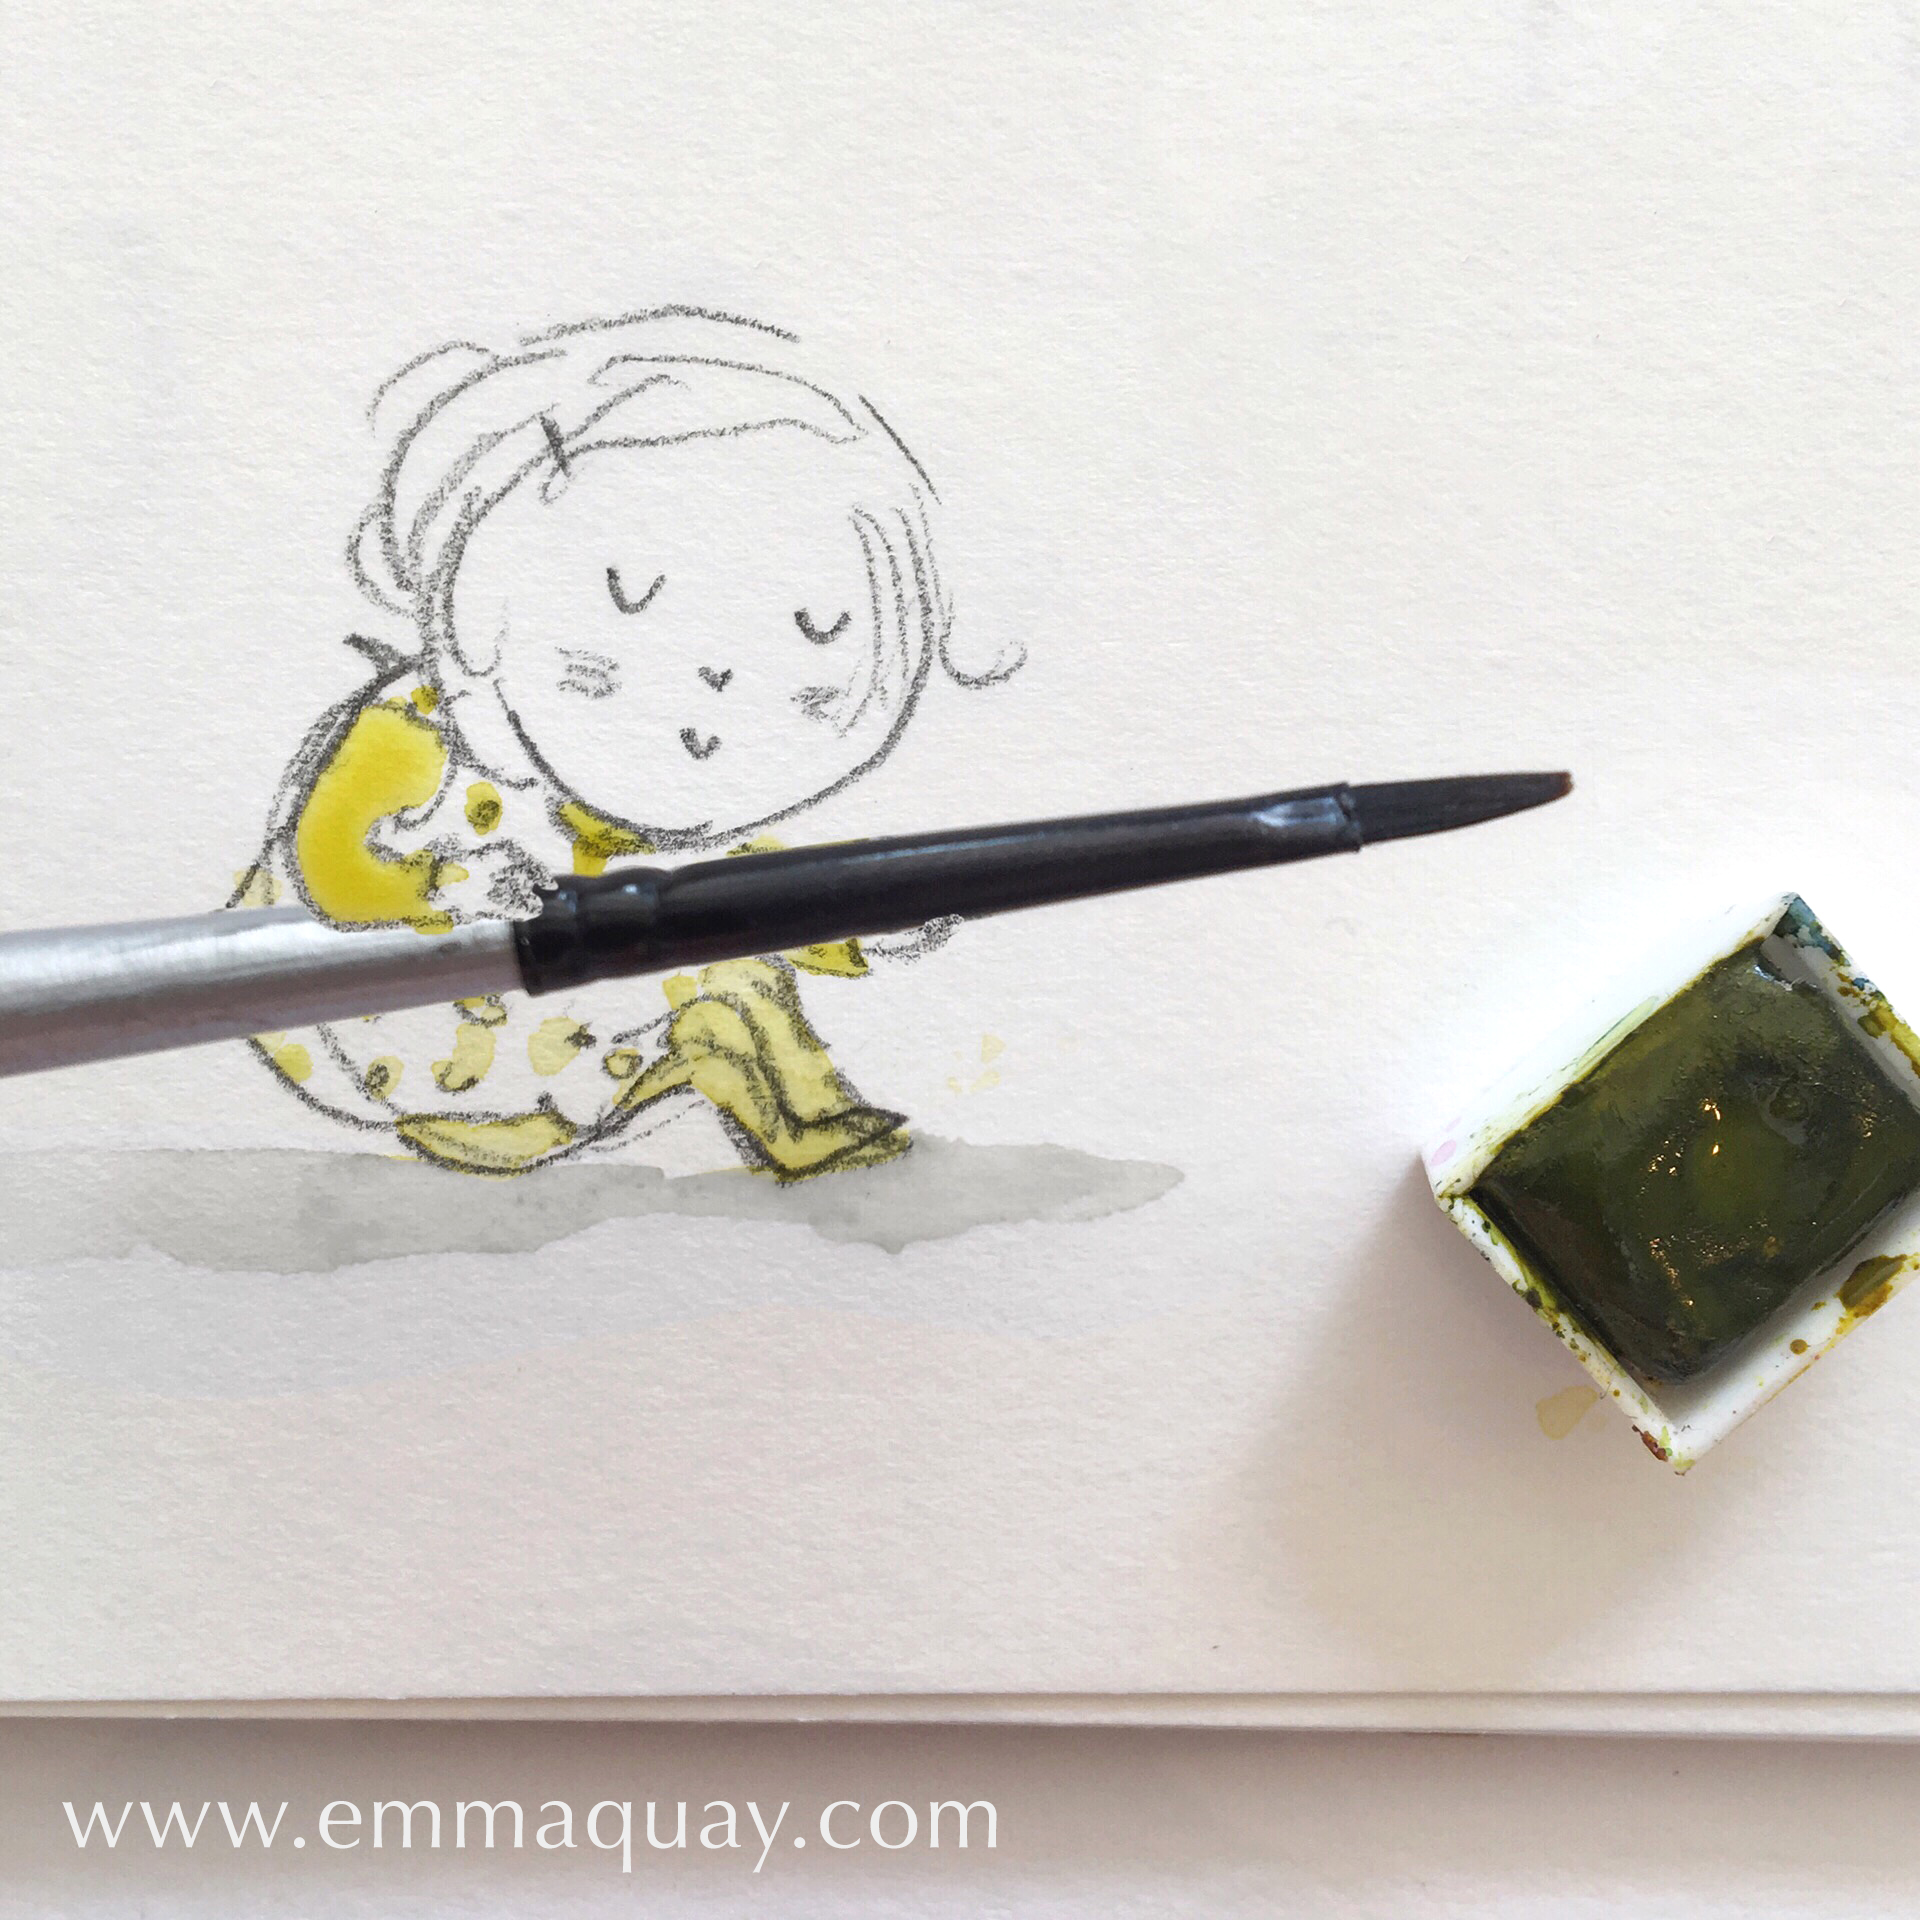 Her favourite colour (Chartreuse) #emmaquaysketchbook